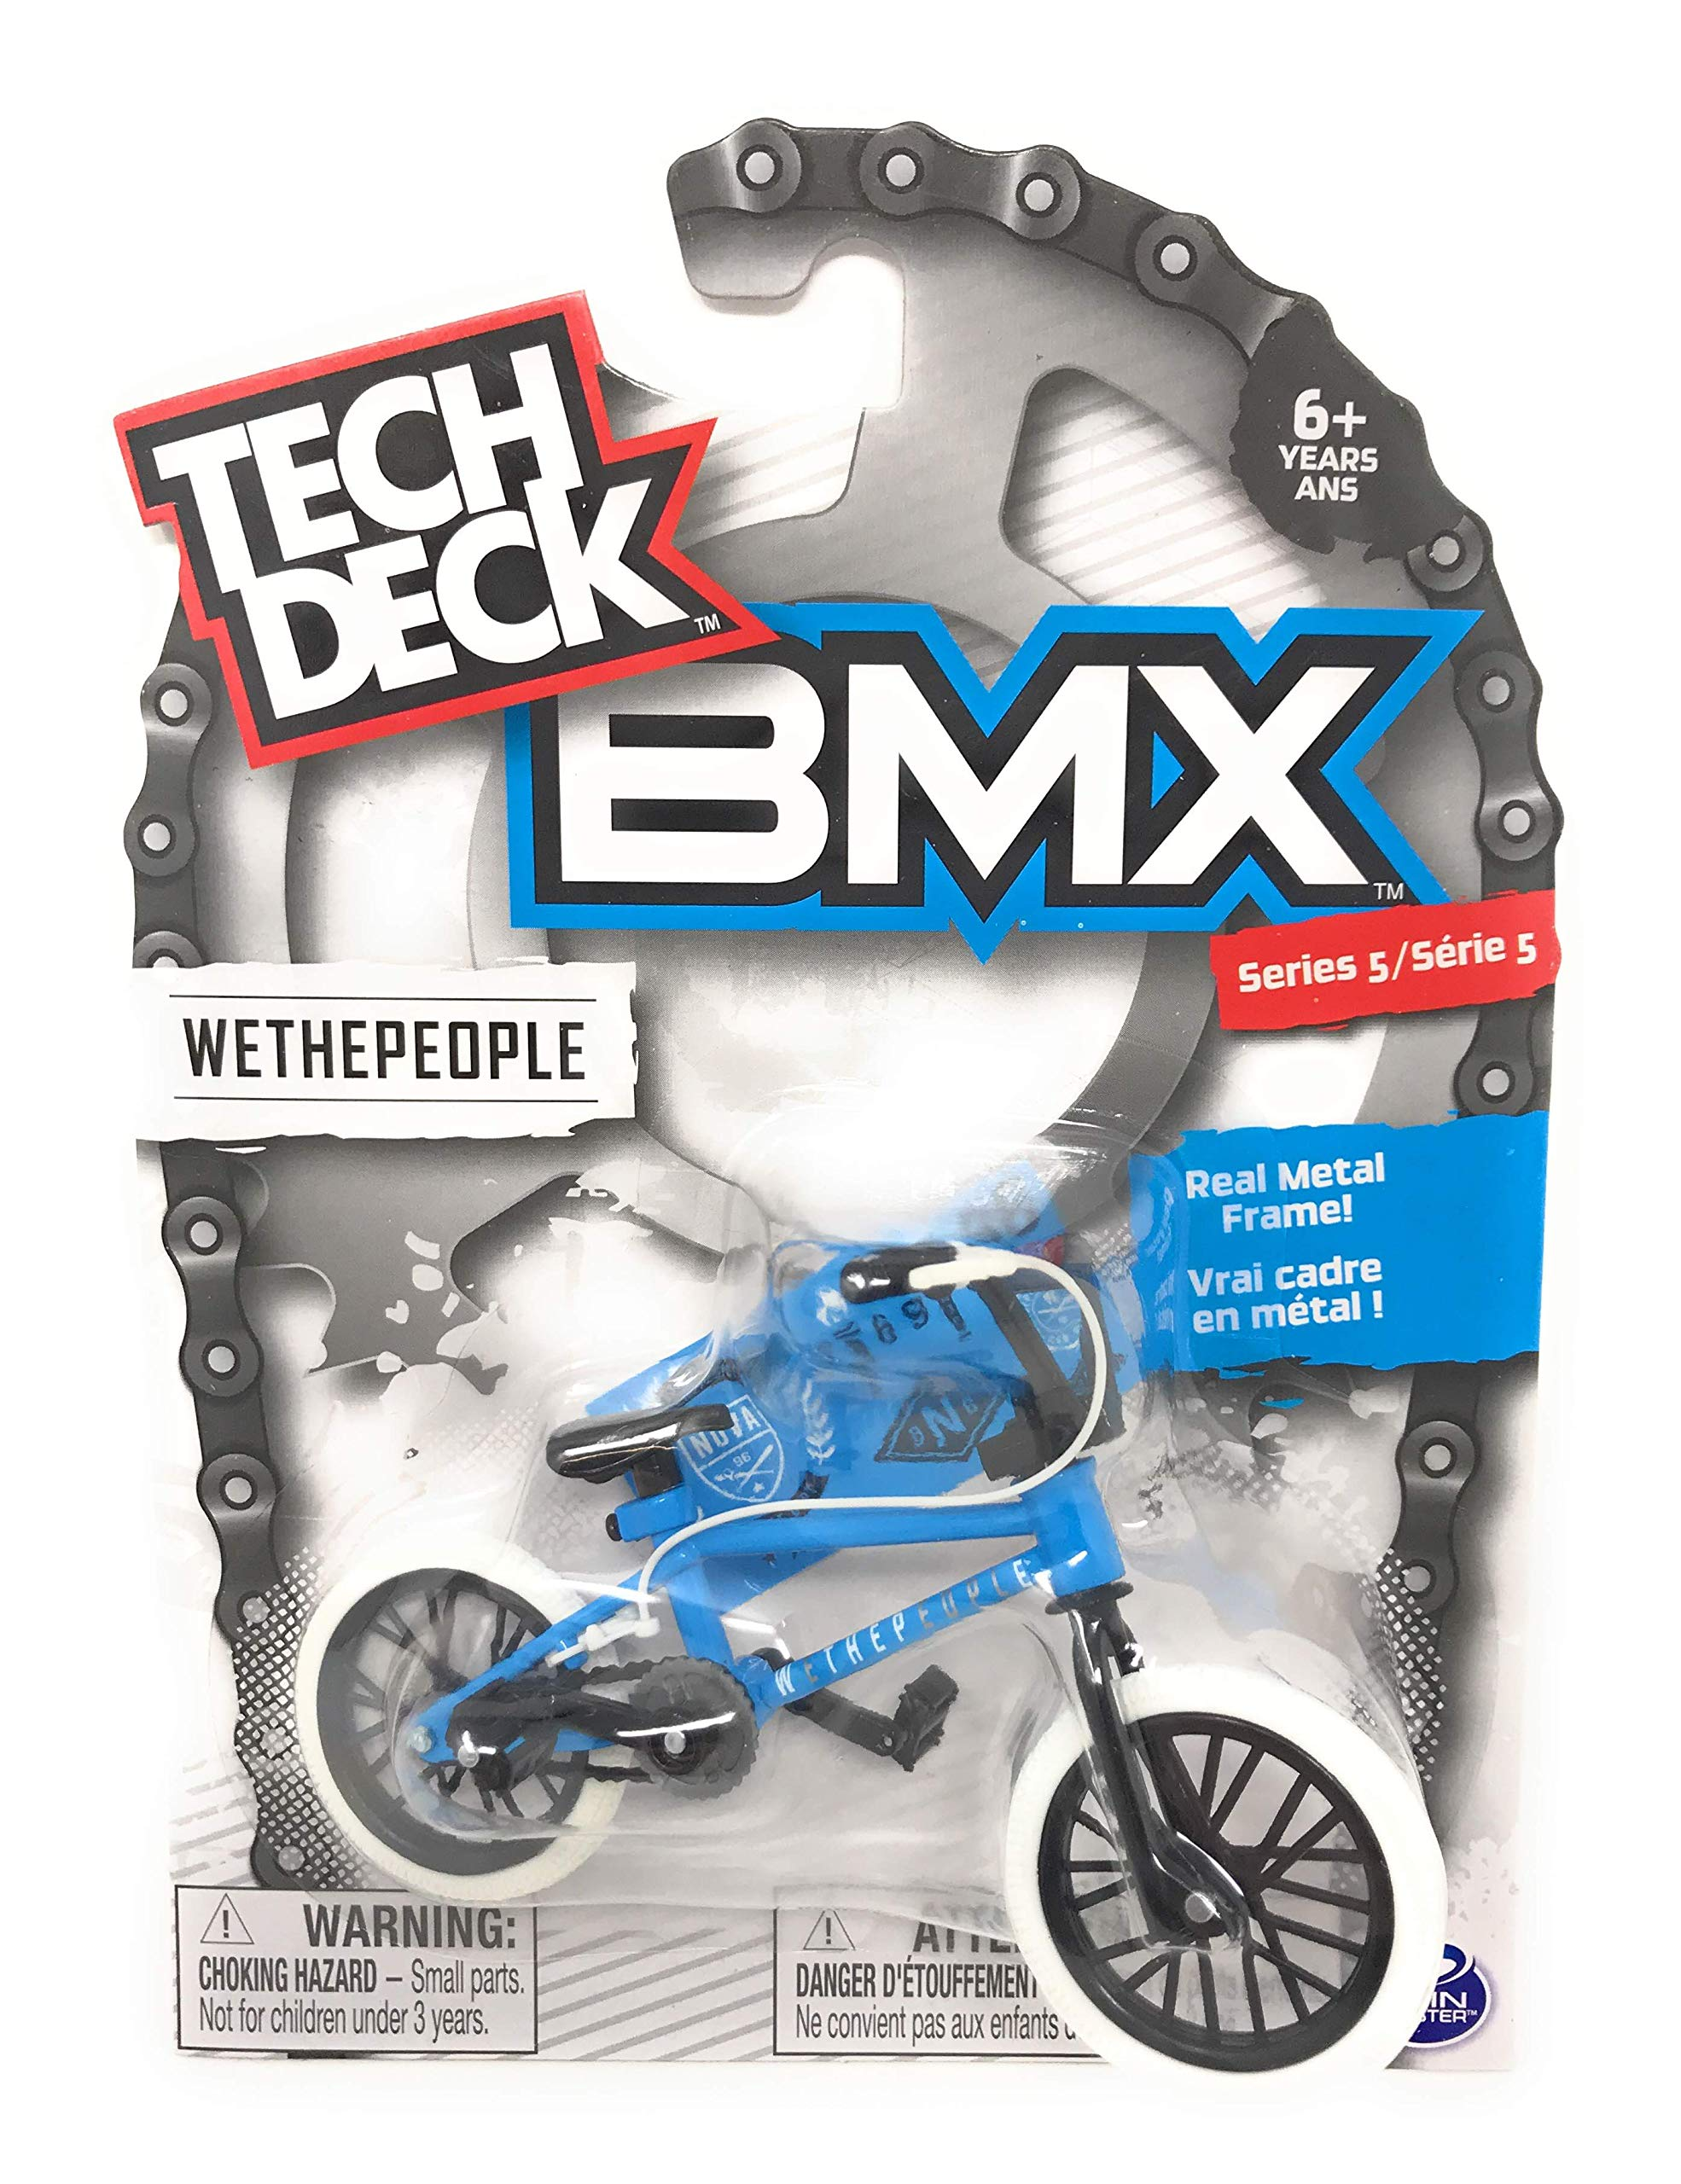 Nozlen Toys Bundle: Tech Deck Series 5 BMX Bikes Set of 4 - WeThePeople and Sunday with Bonus Bag by Nozlen Toys (Image #5)